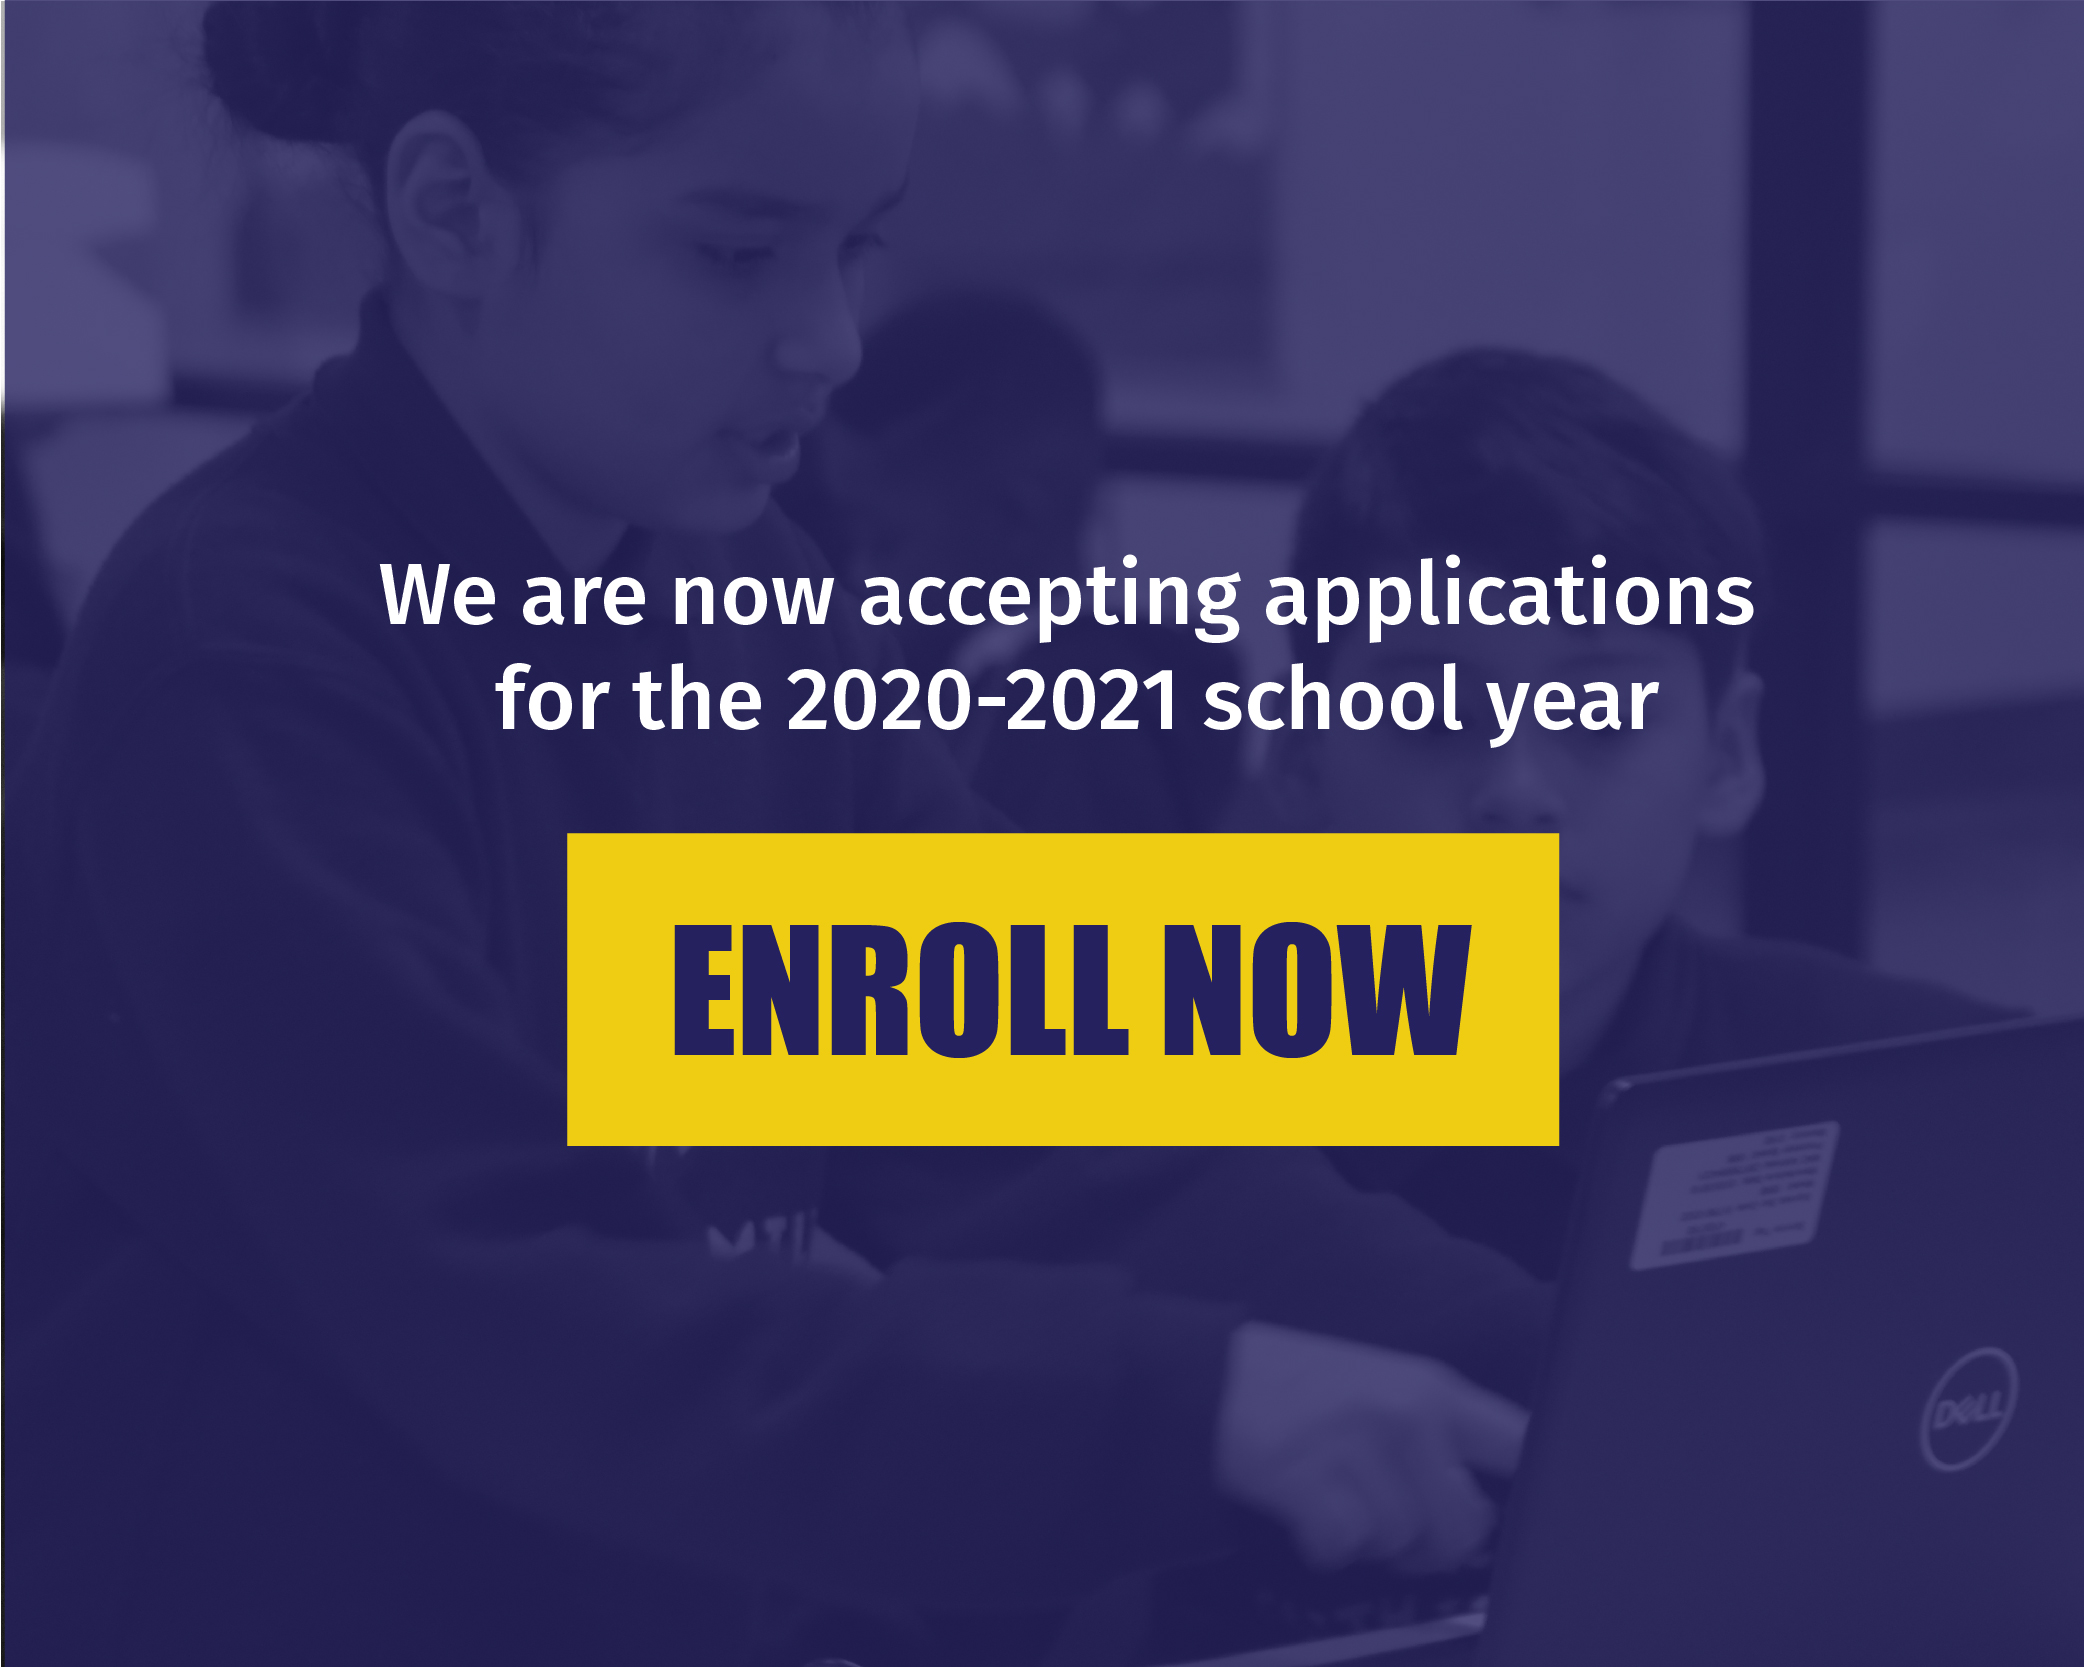 we are now accepting applications for SY20-21. Enroll now